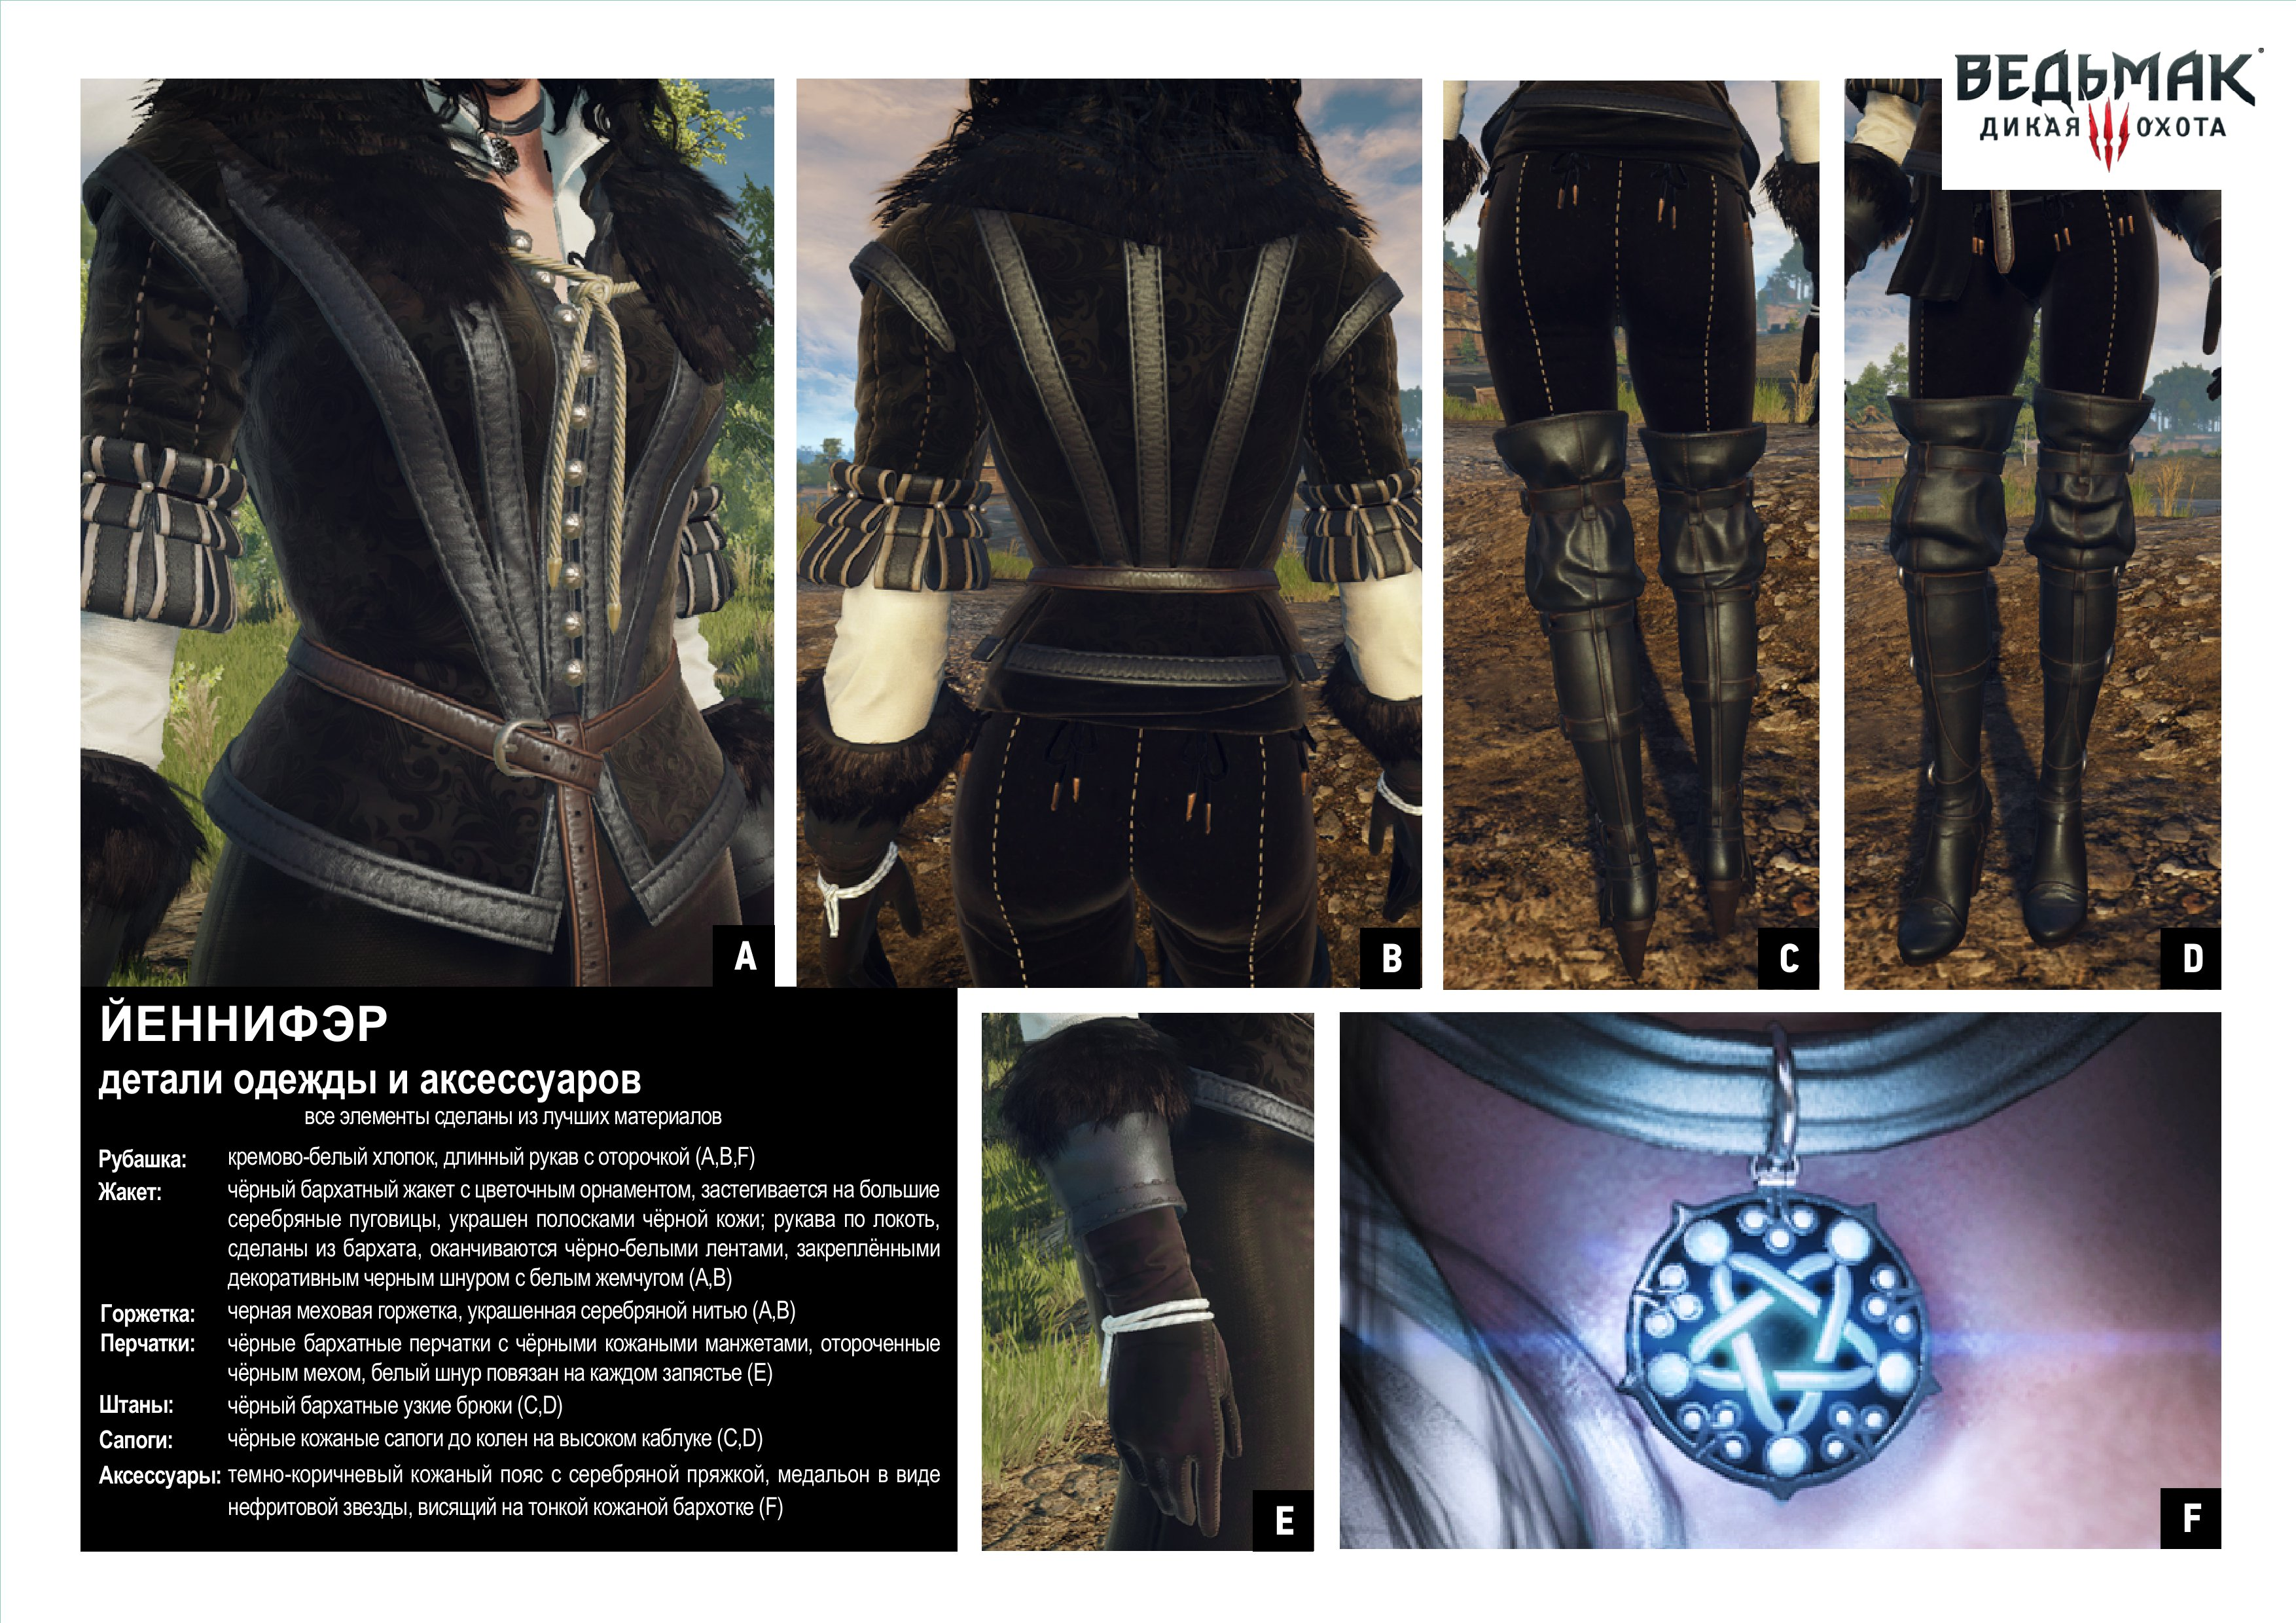 Yennefer_cosplay_guide05-00.jpg